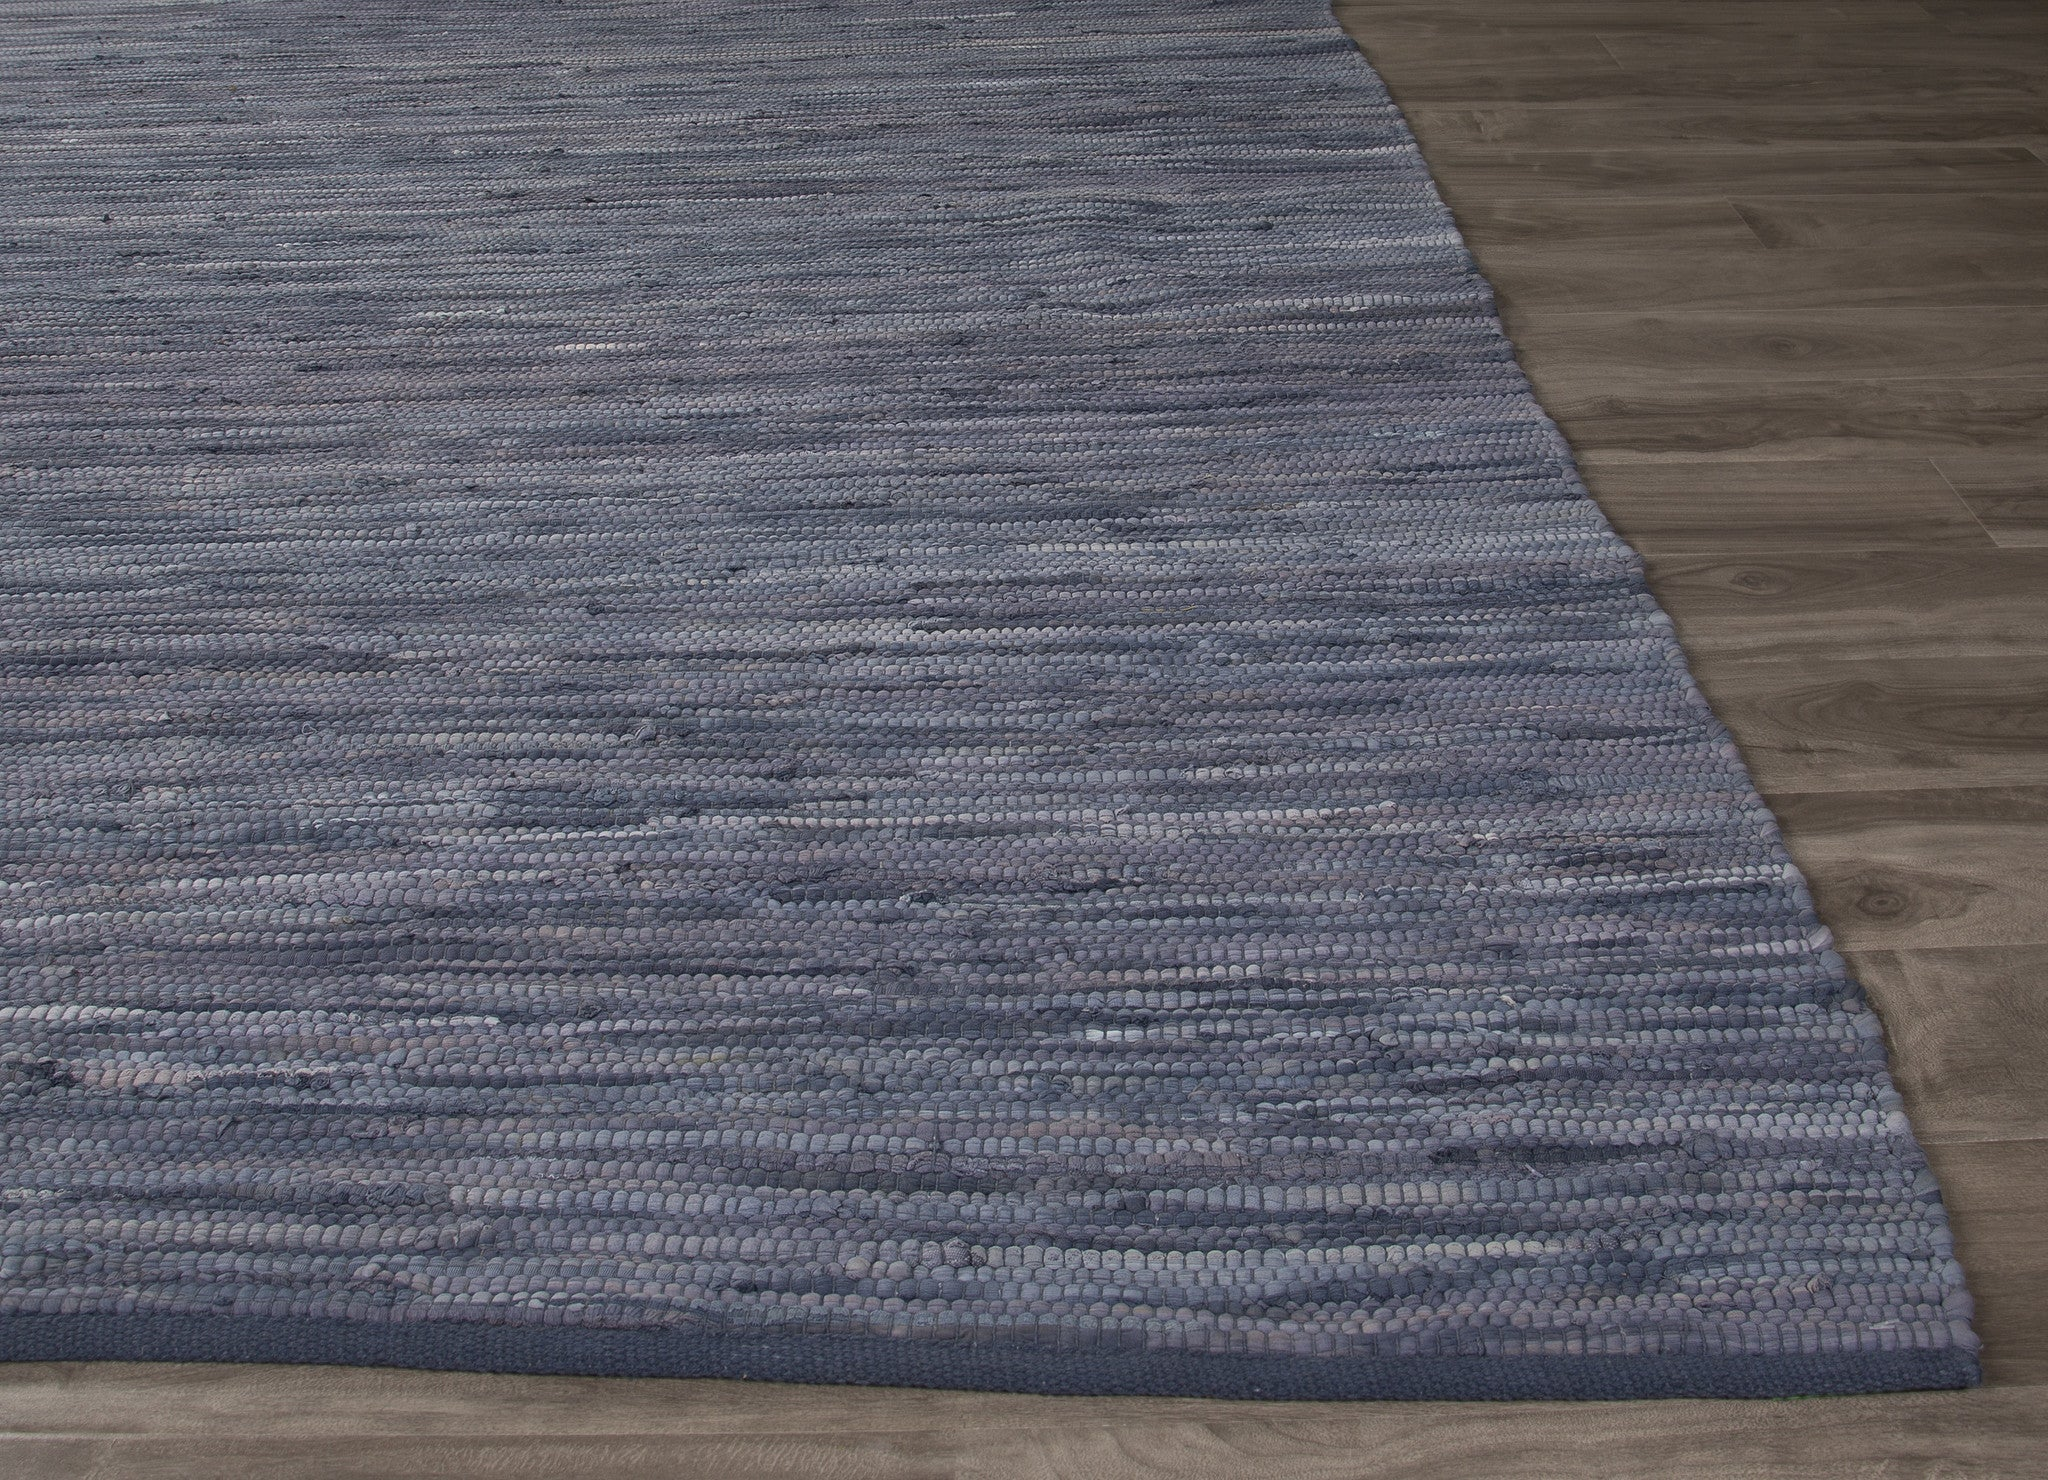 Kempton polyester area rug burgundy merlot colored 3 x3 area rugs - Jaipur Rugs Flatweave Solid Pattern Blue Cotton Area Rug Ann04 Rectangle